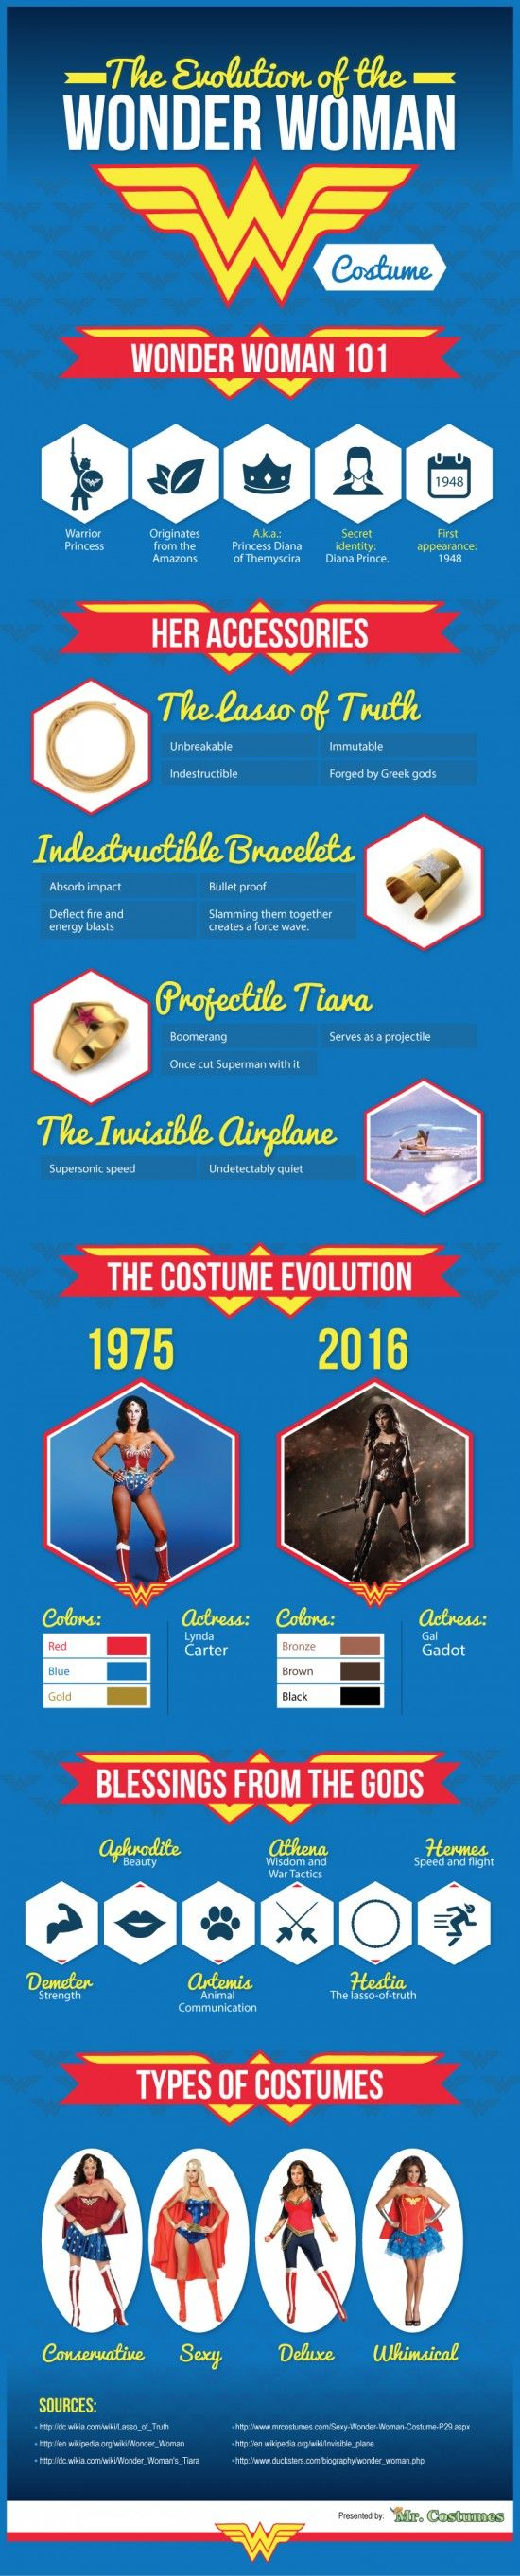 A brief history and info-graphic on the evolution of Wonder Woman through the years. Search Wonder Woman Costumes and find your Super Hero style today!